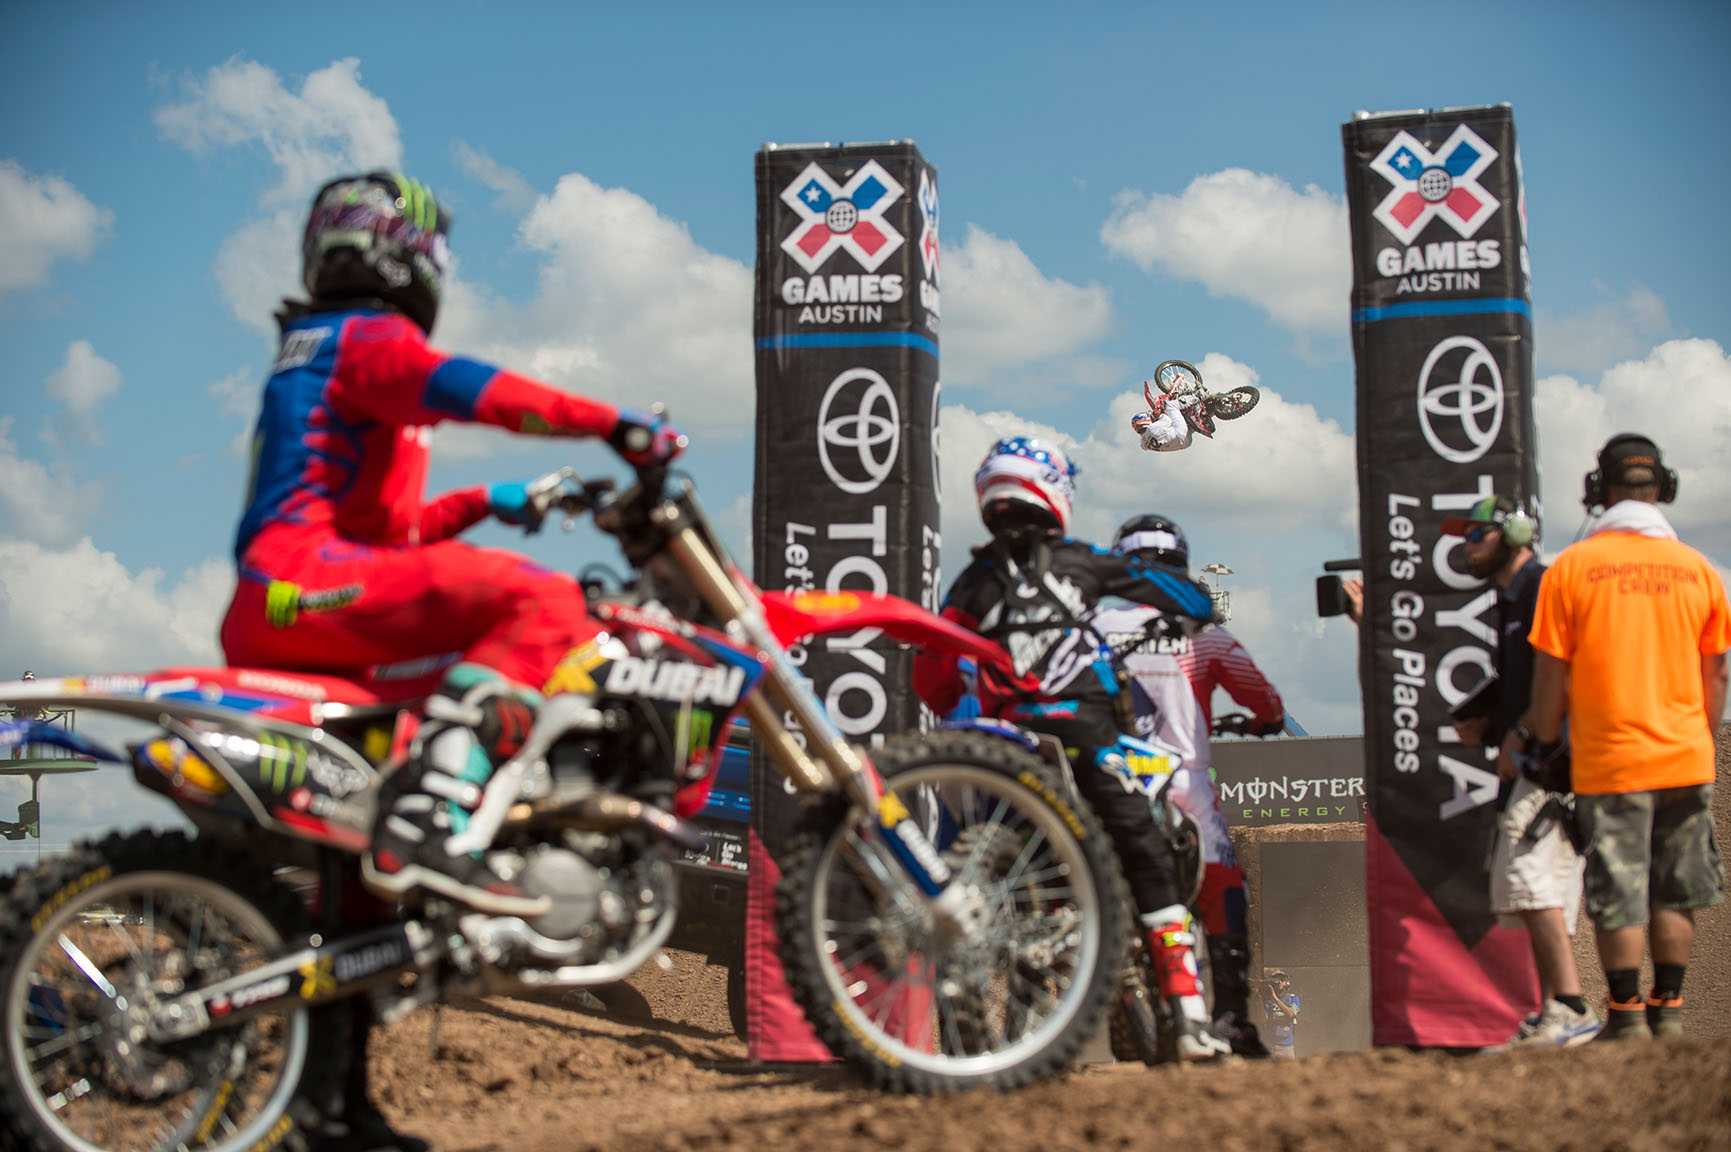 Beau Bamburg, who earned the nickname The Basher, competes in the fan-voted Moto X Best Whip on Sunday, as his fellow competitors look on. Bamburg, who also competed in Speed & Style in Austin, finished sixth in Best Whip, while Jarryd McNeil won his first gold in the discipline.